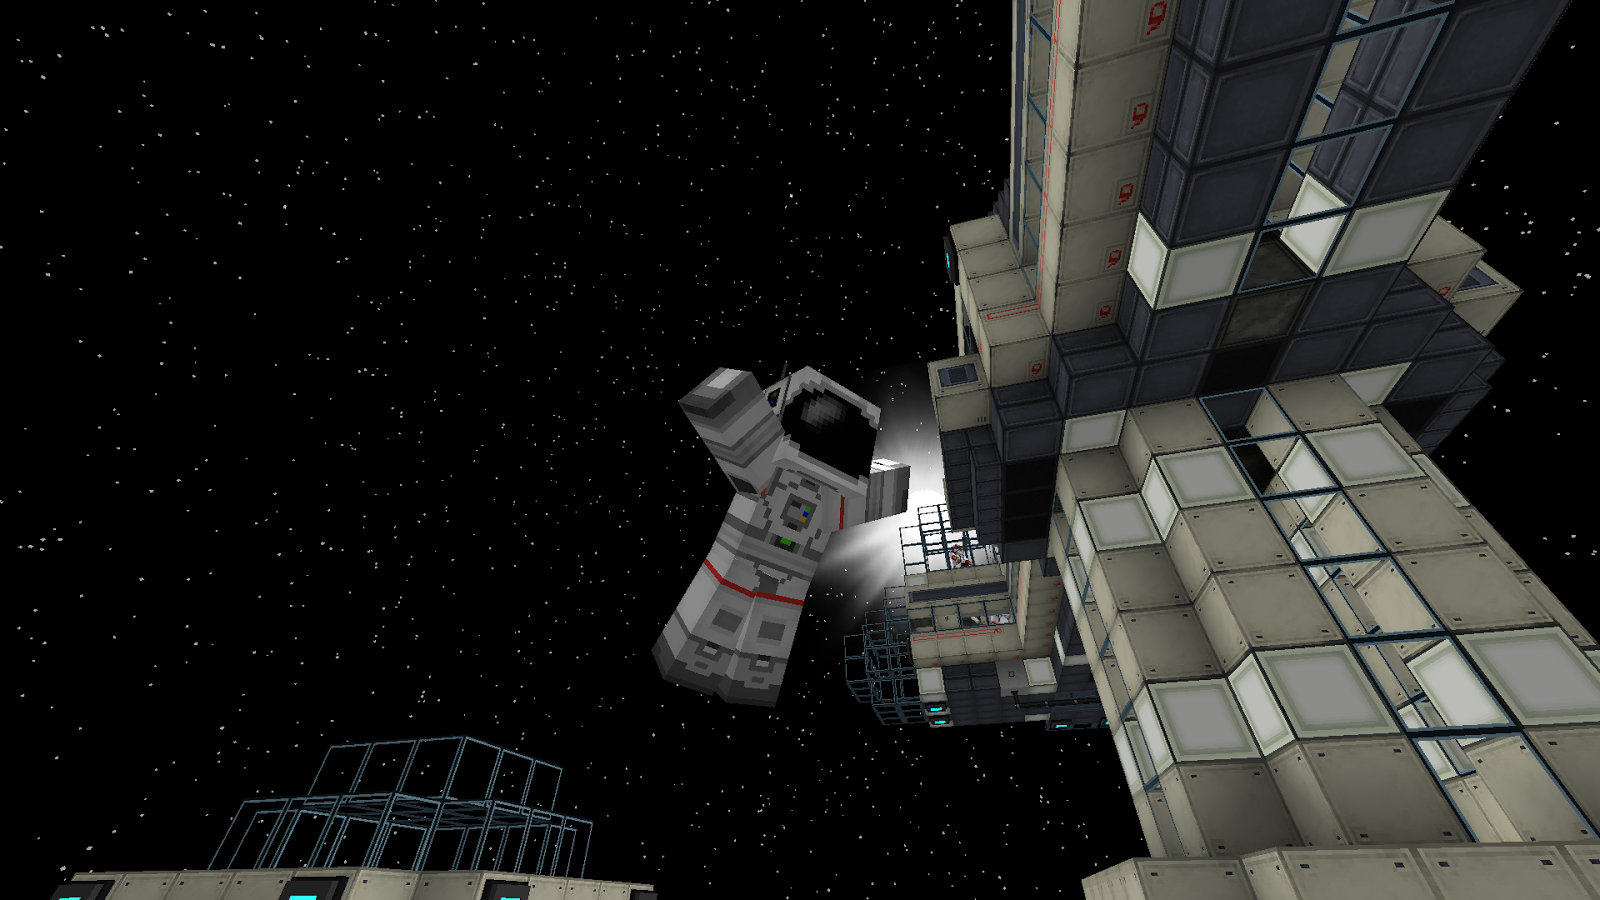 galacticraft space station 3 - photo #27